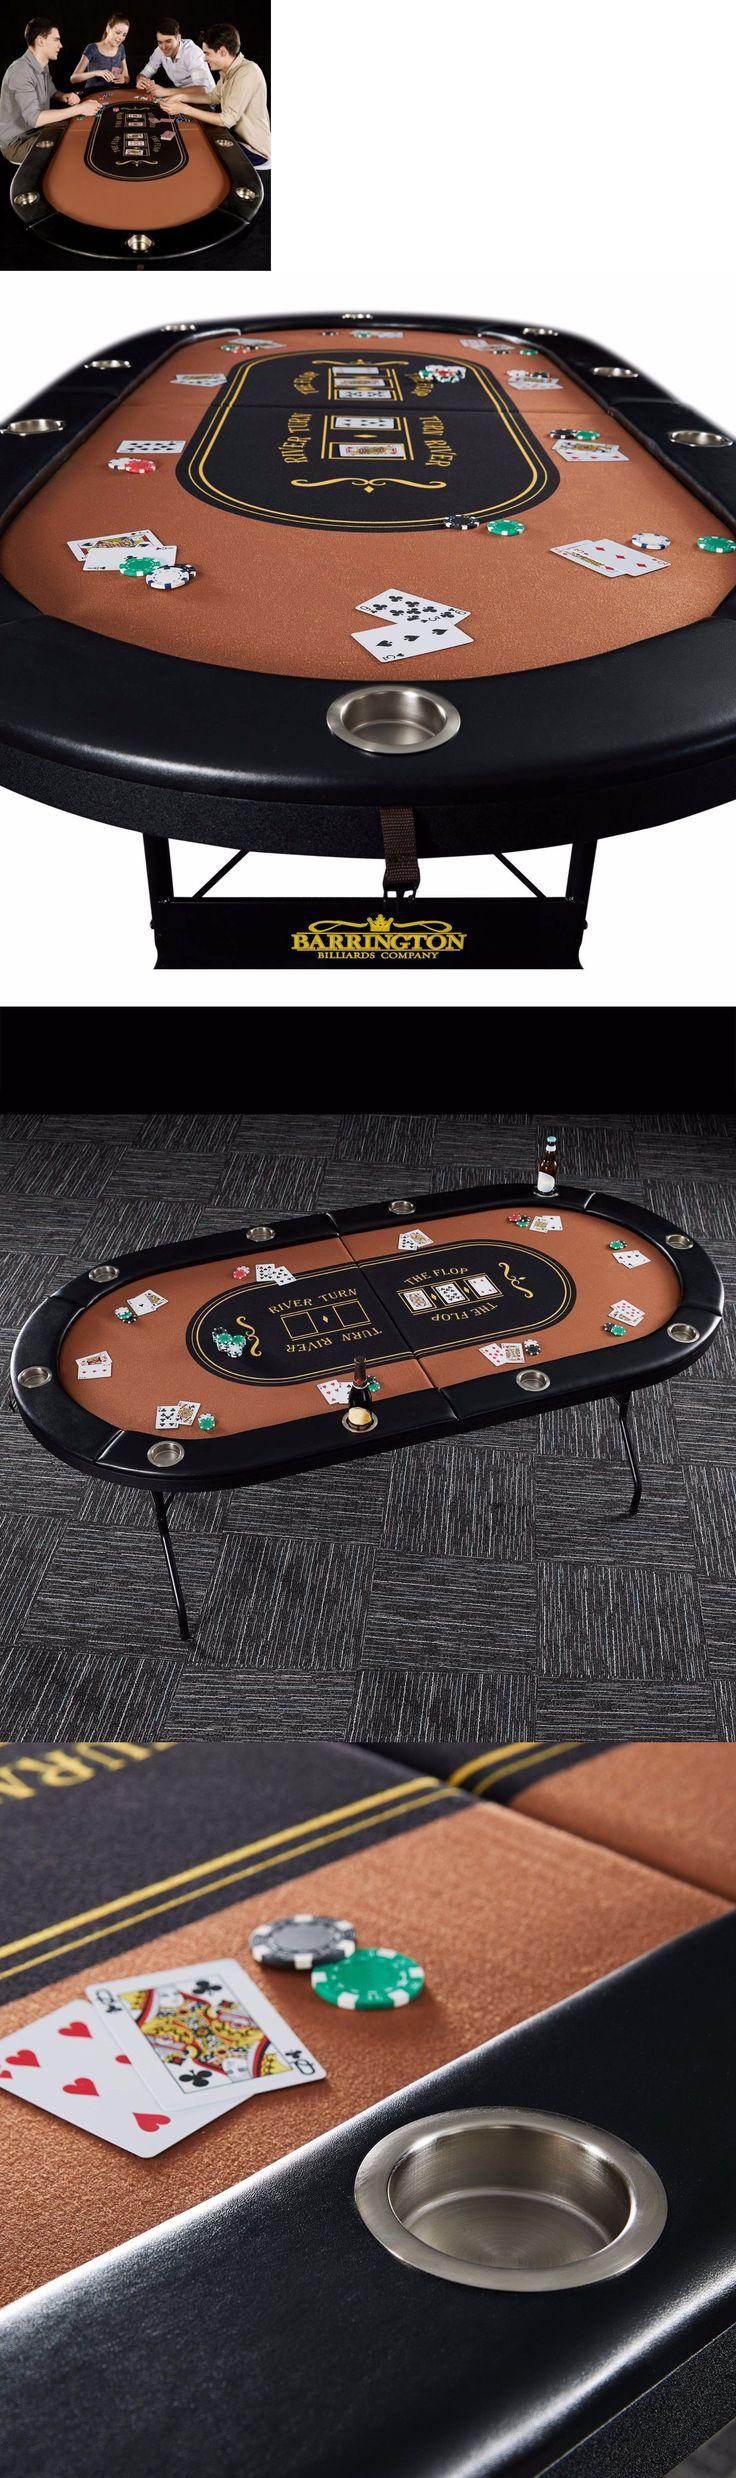 Card Tables and Tabletops 166572: Poker Table 10 Player High Grade Sienna Felt Compact No Assembly Required -> BUY IT NOW ONLY: $181.99 on eBay!